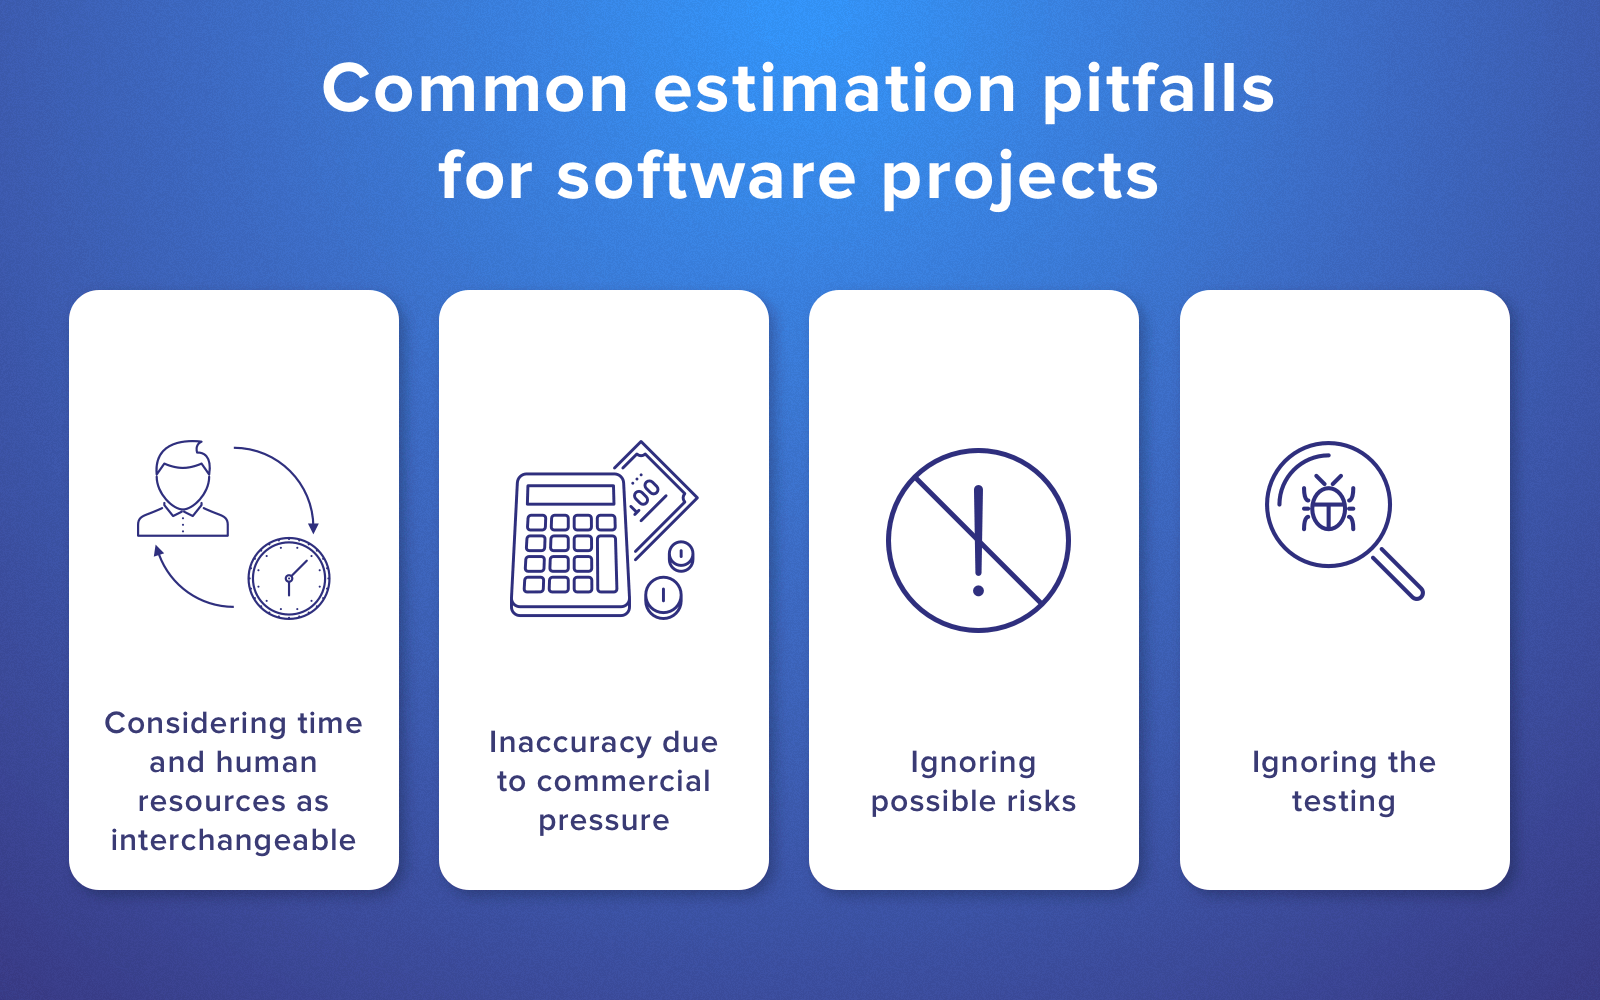 Common pitfalls in software development estimation